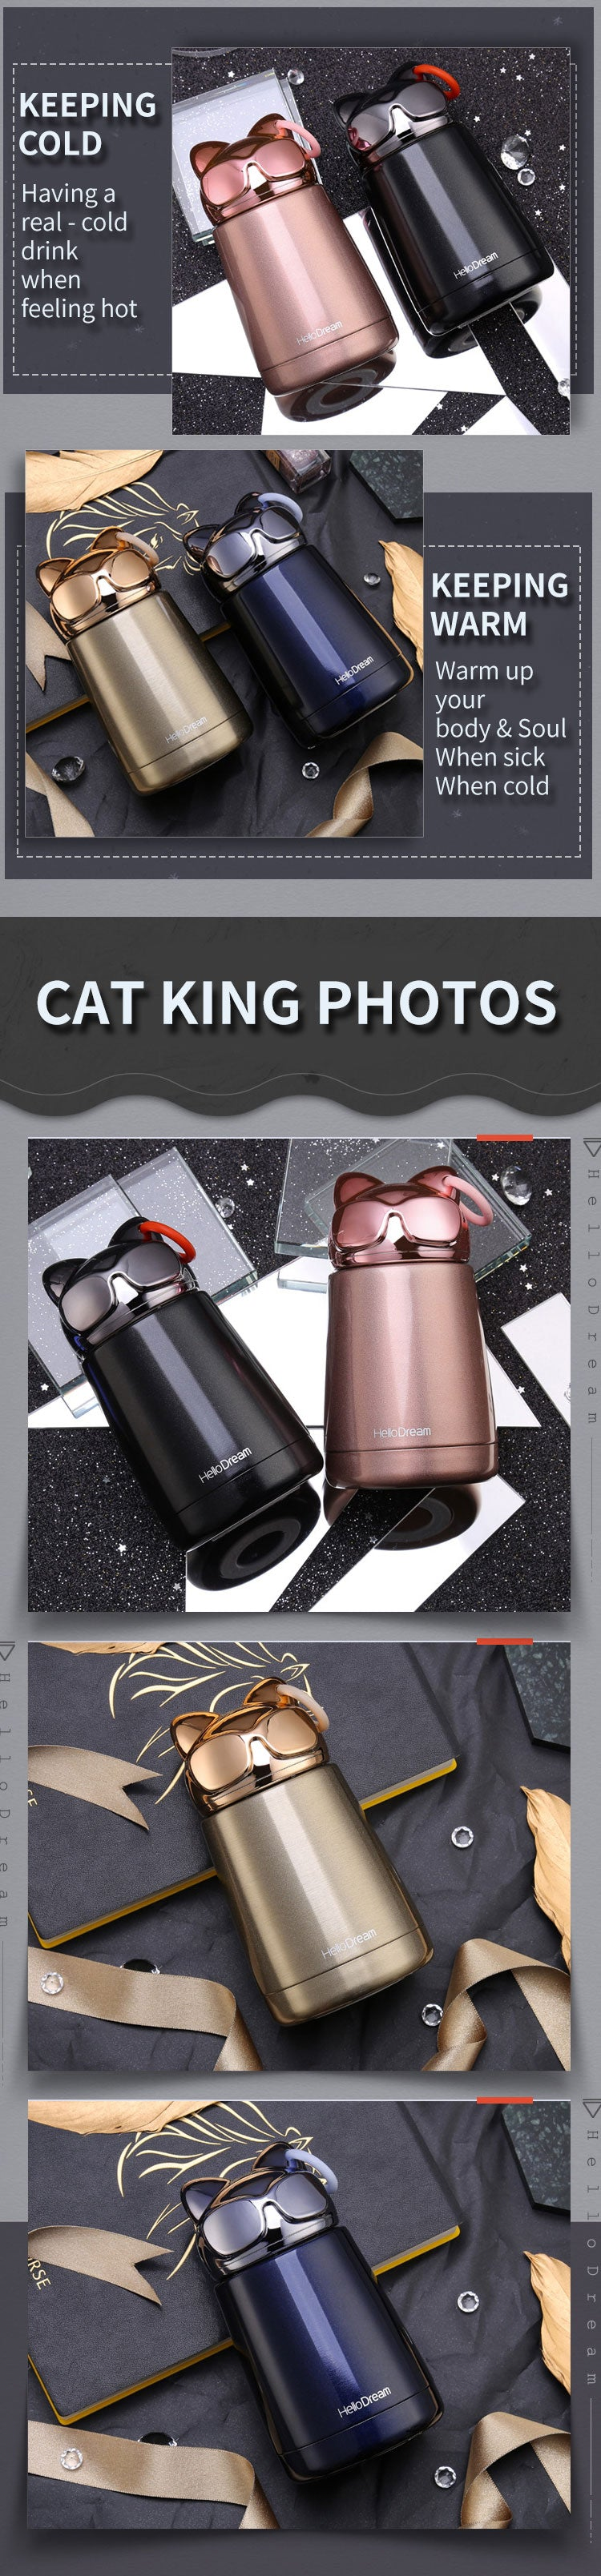 cat water bottle insulated vacuum thermal thermos coffee mug hot cold thumbler